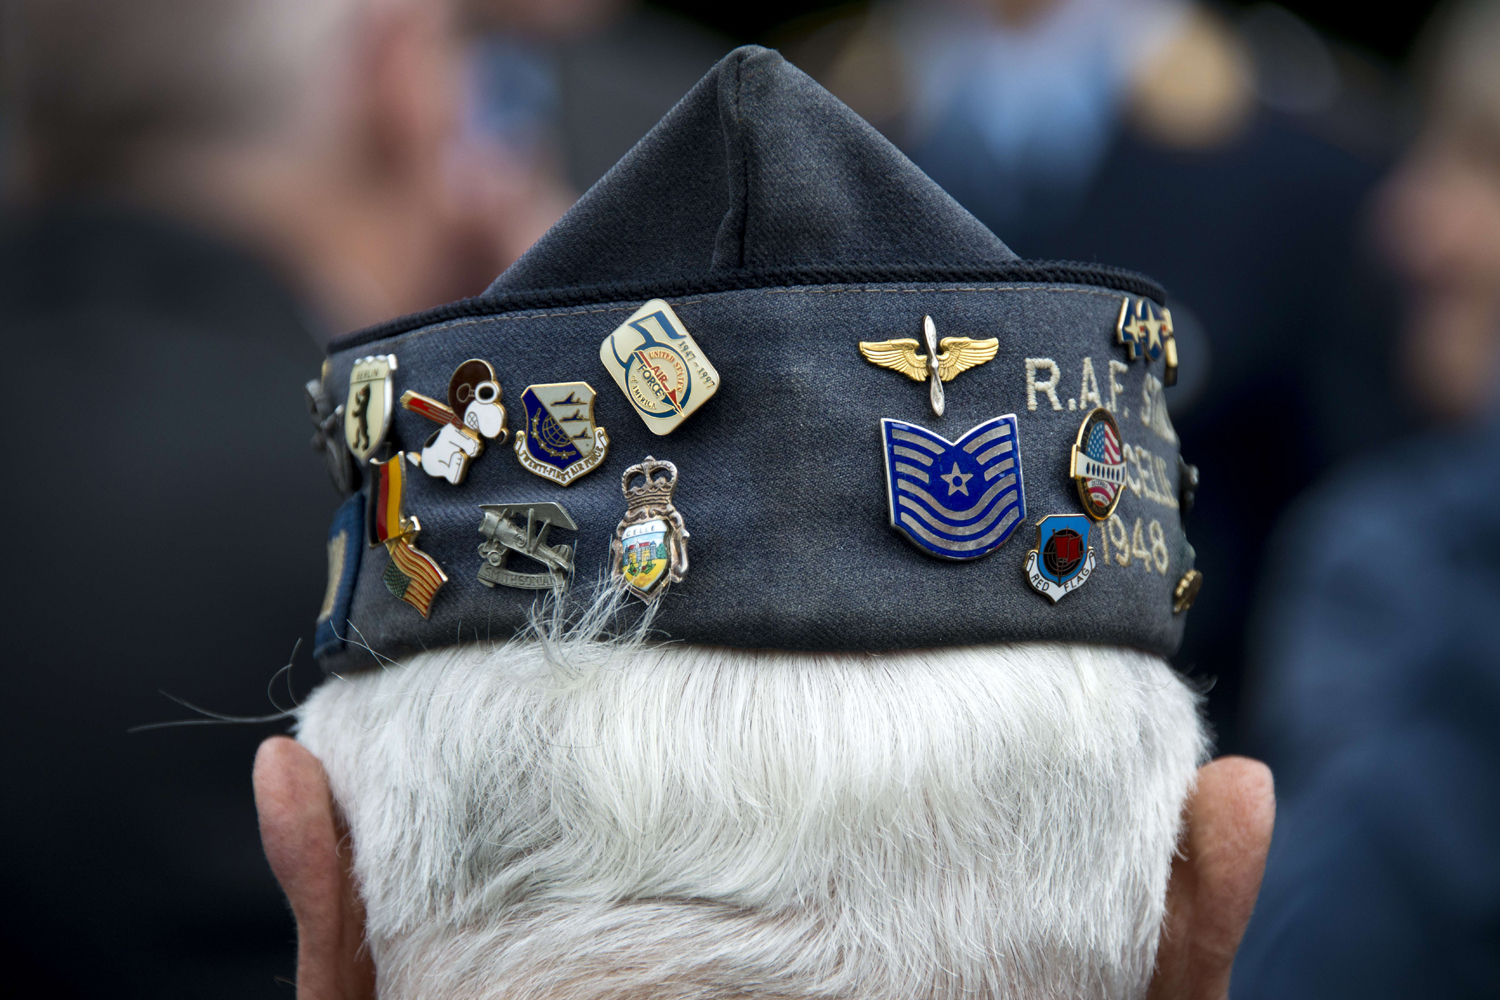 May 12, 2014. The hat of former US Air Force veteran Johnny Macia is pictured during a wreath laying ceremony  at the Berlin Airlift memorial outside Tempelhof airport in Berlin, commemorating the airlift during the Cold War Berlin blockade.